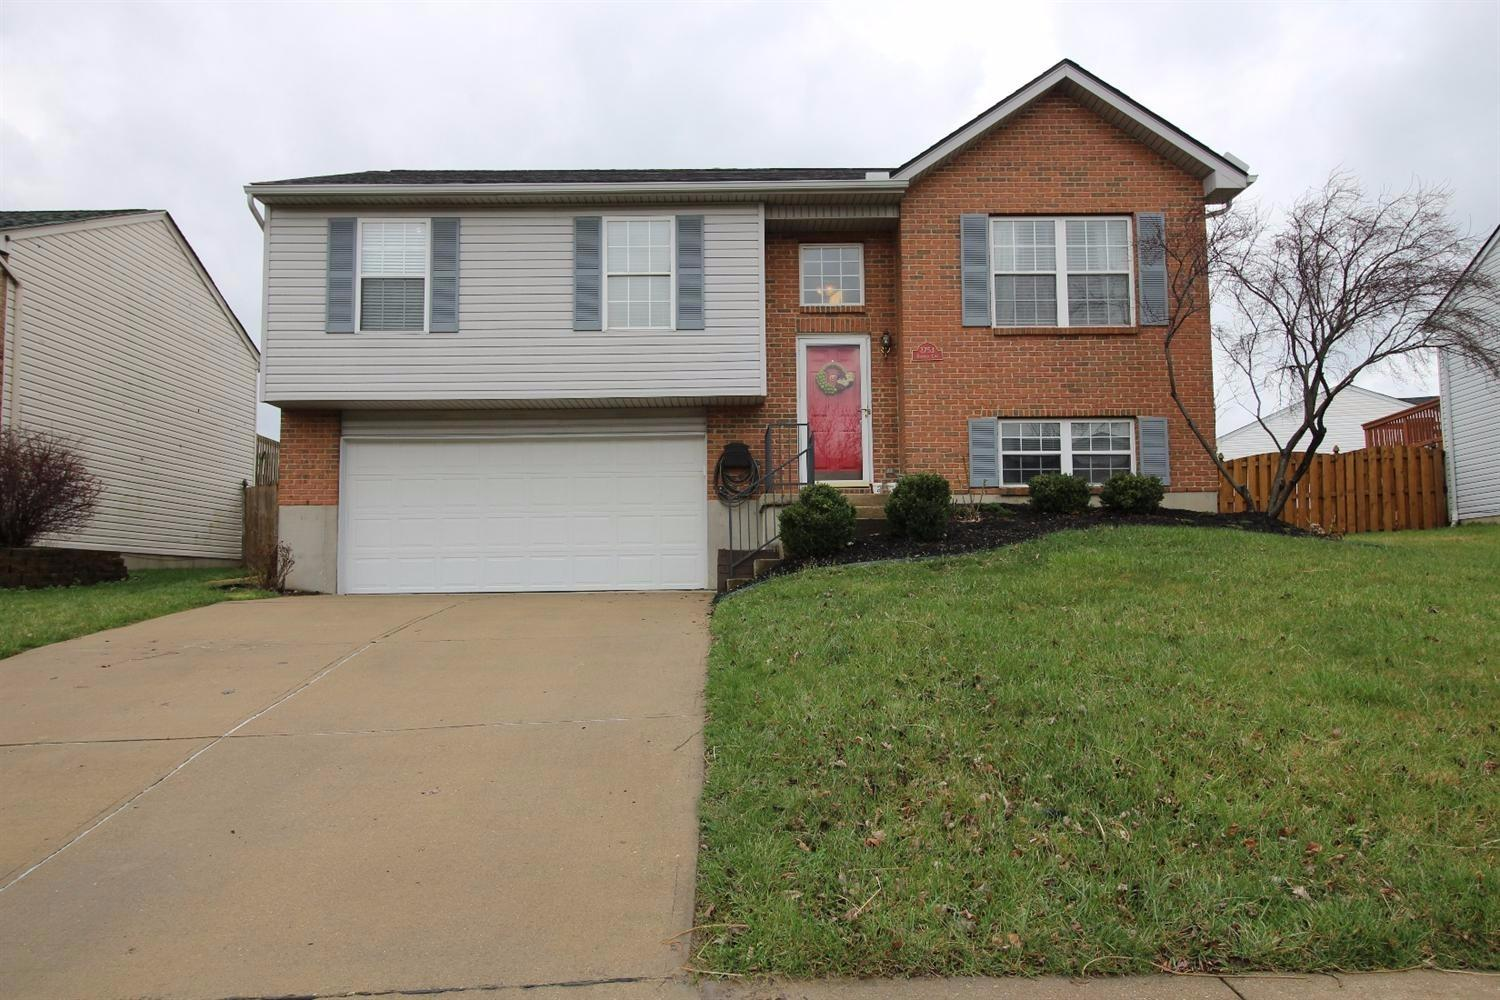 Photo 1 for 2753 Berwood Ln Hebron, KY 41048